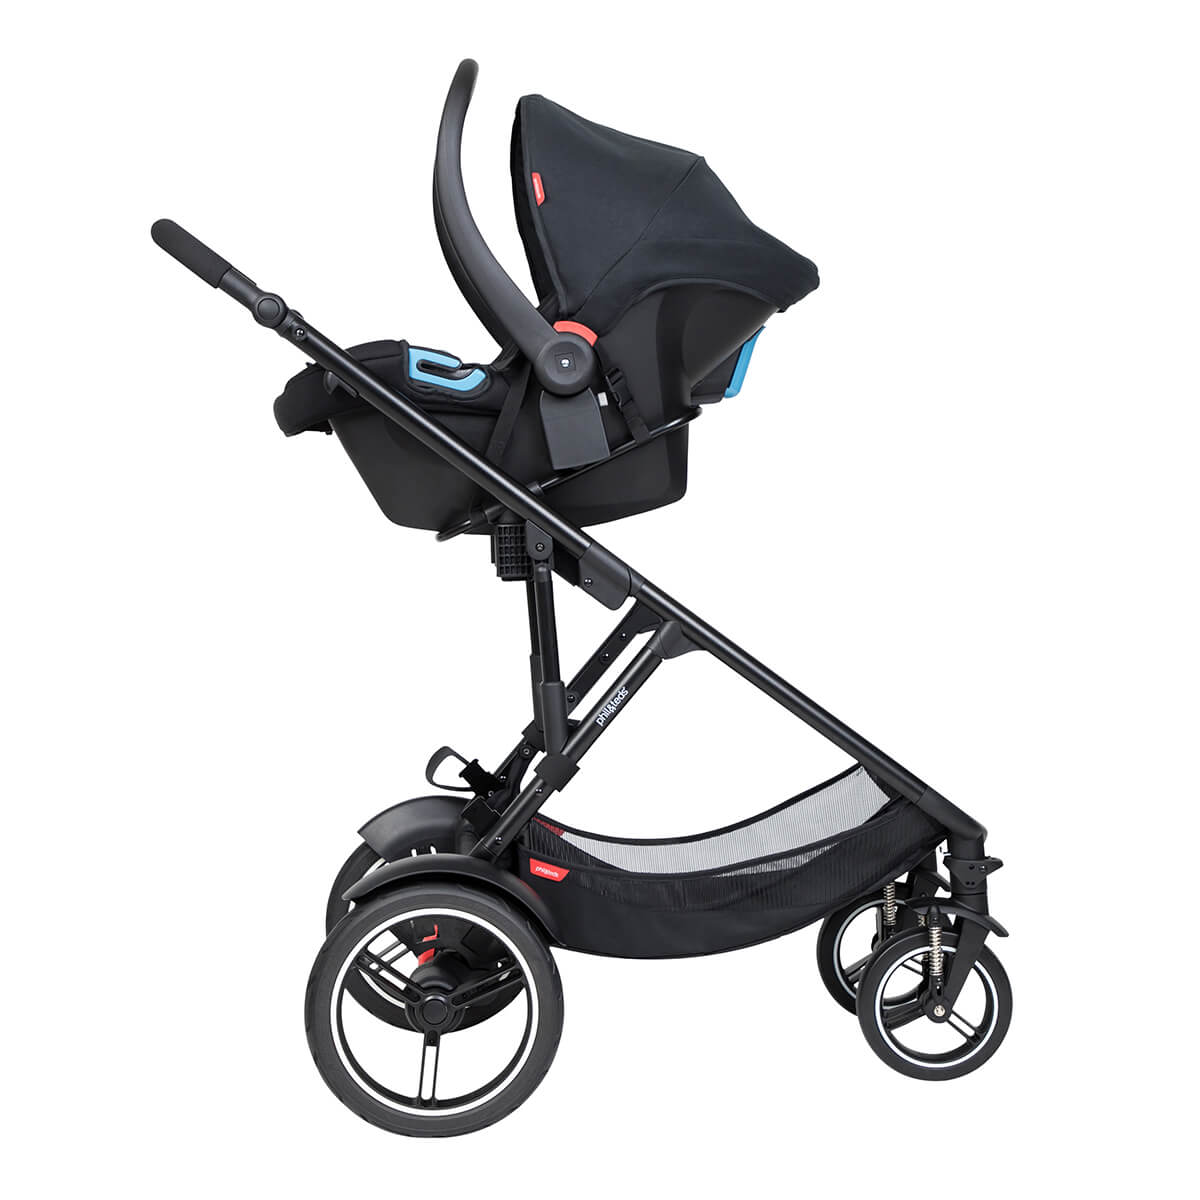 https://cdn.accentuate.io/4513464057952/19440099360952/philteds-voyager-buggy-with-travel-system-in-parent-facing-mode-v1626486728020.jpg?1200x1200